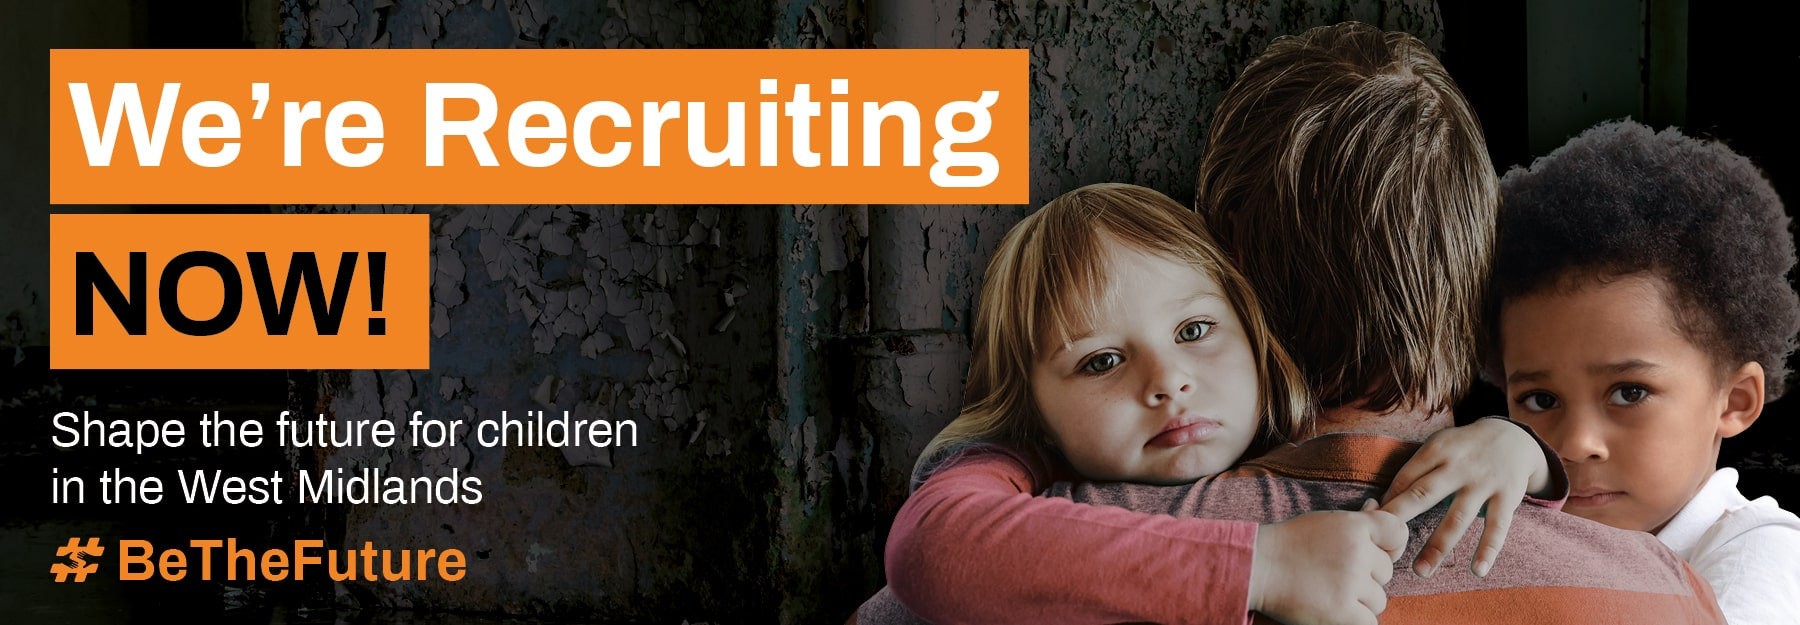 We're recruiting now to qualified social care roles. Help shape the future for children in the west midlands. Give them a tomorrow, join us today - campaign banner